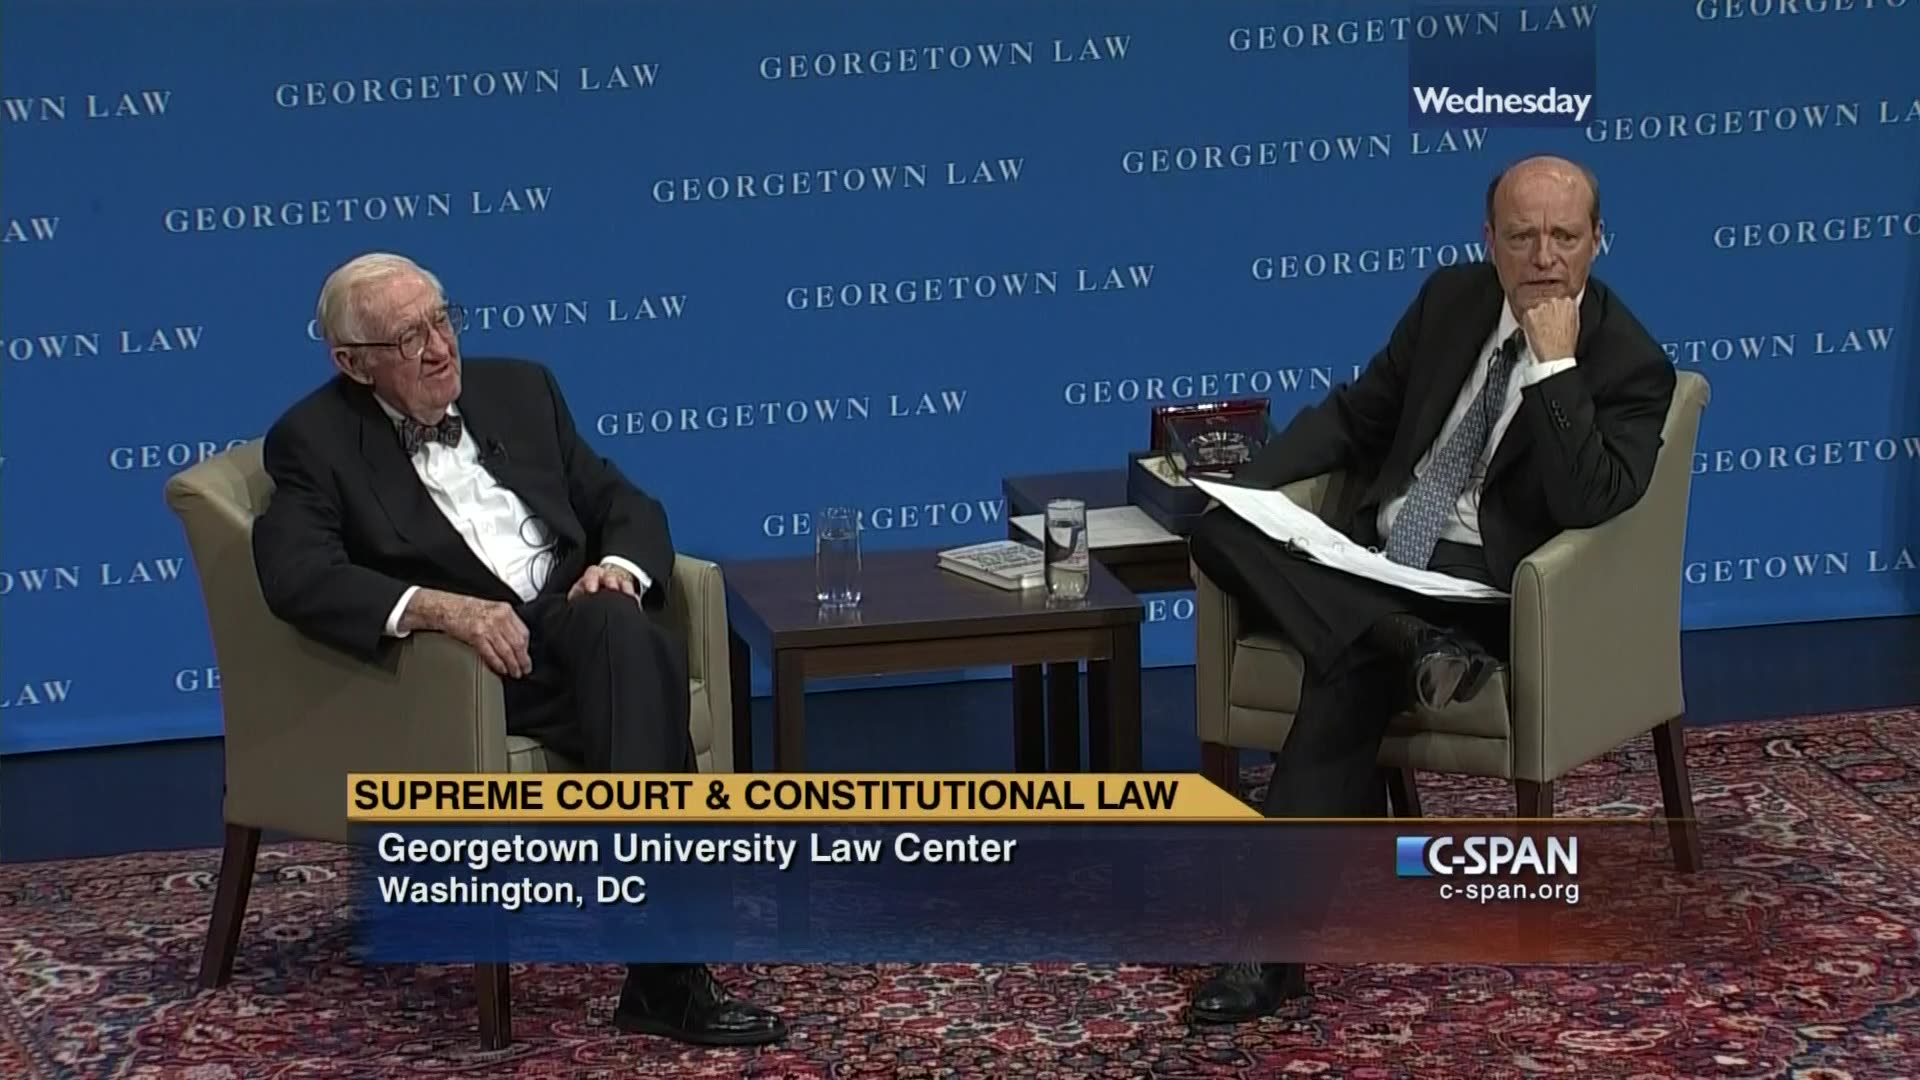 Georgetown law first assignments